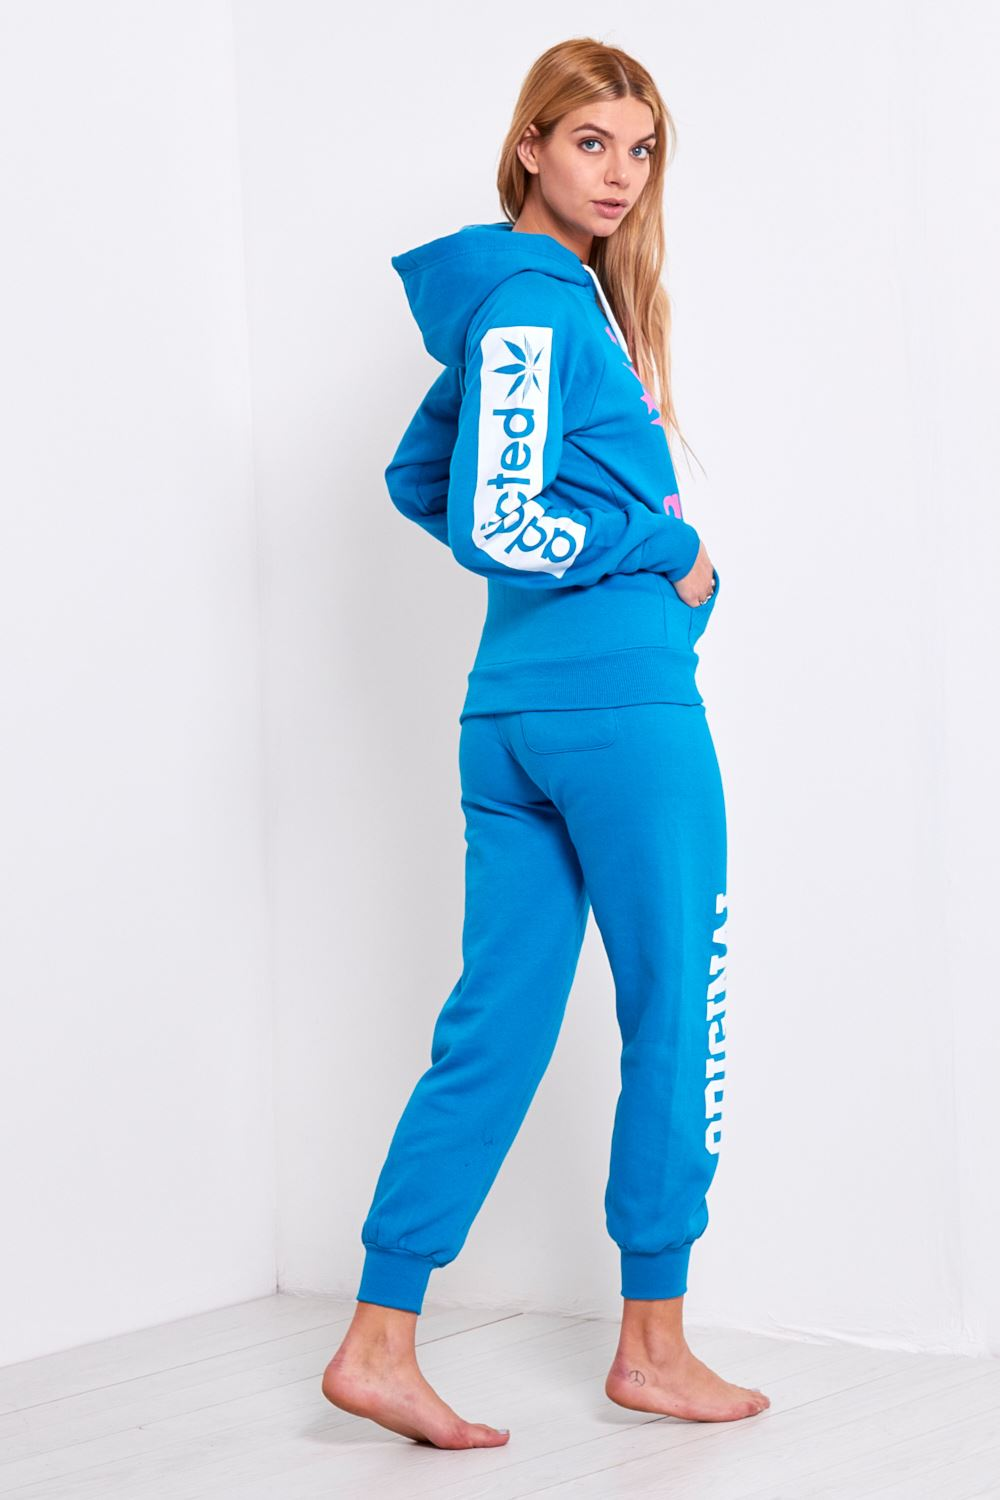 WOMEN'S TRACKSUITS. Trends recycle. But long gone are the days dominated with pressed stiff skirts and boxy-looking dresses for women's casual wear.